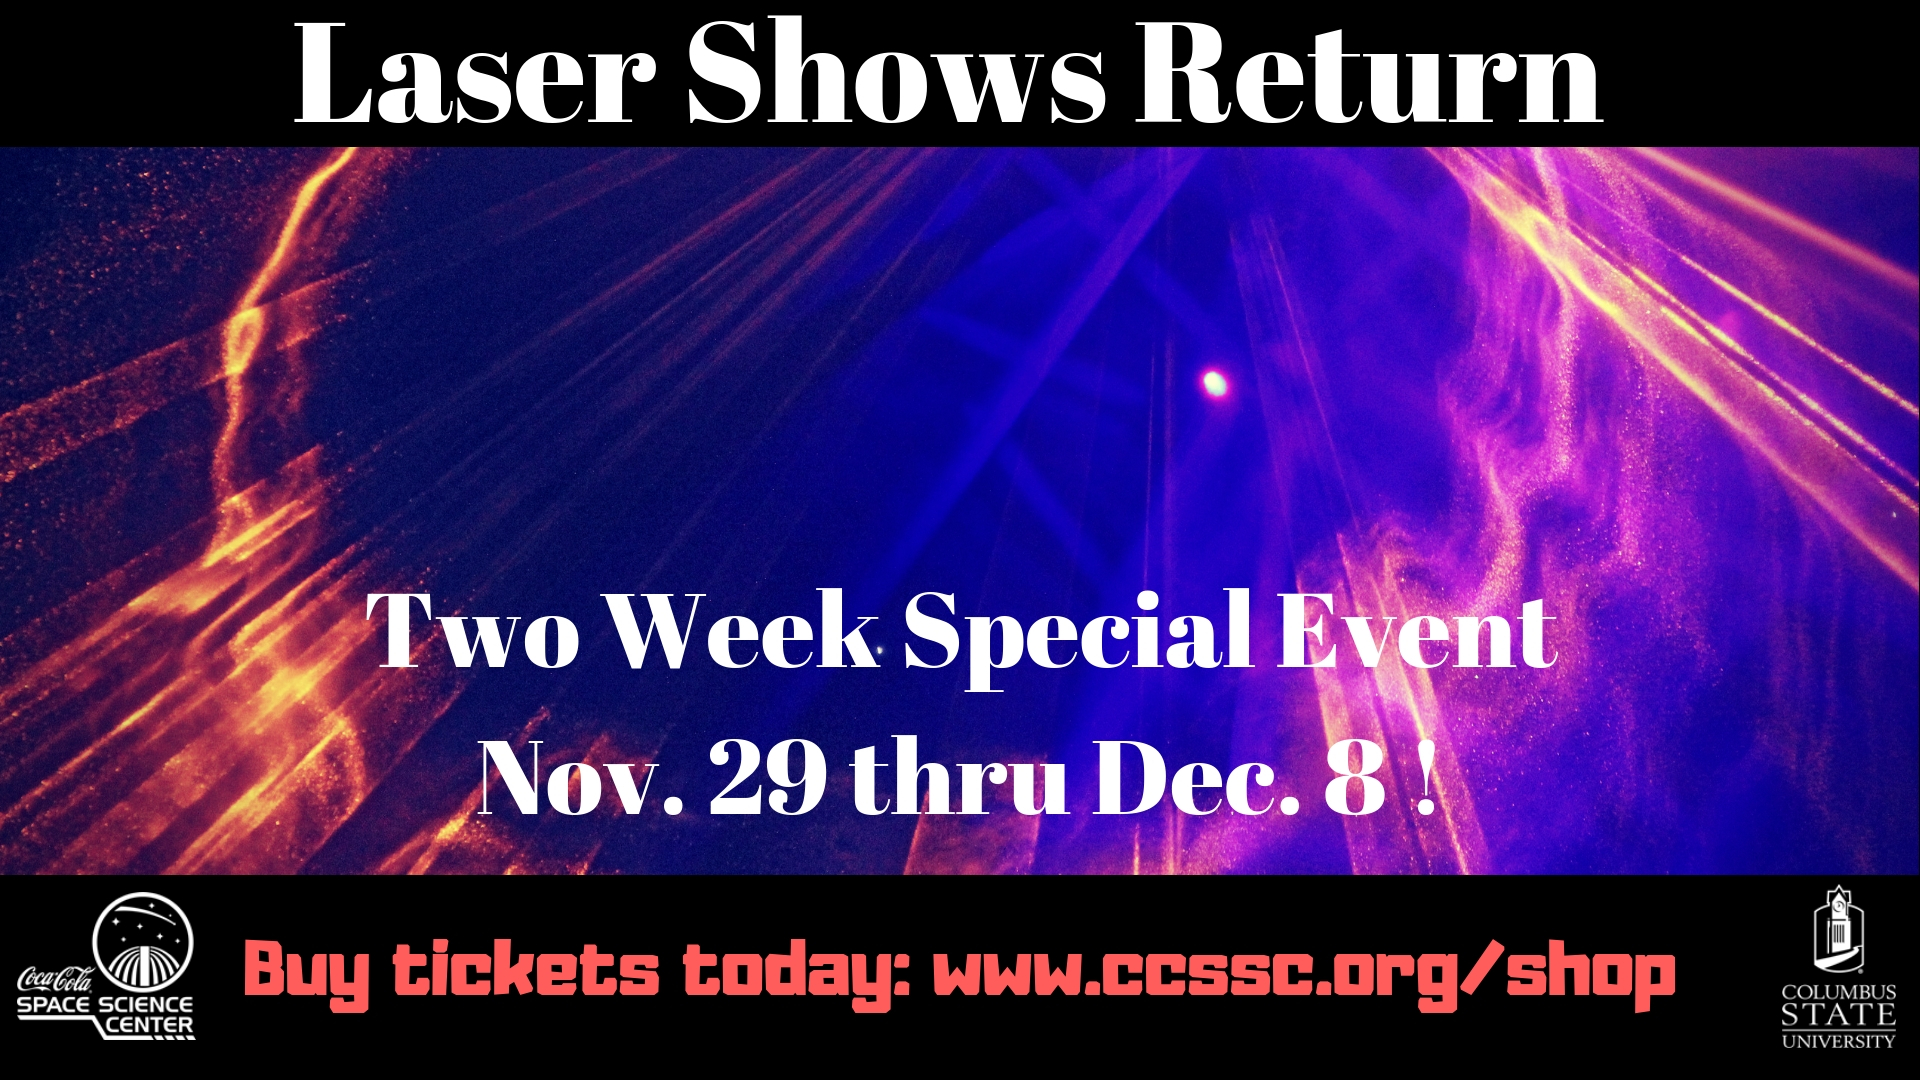 Laser Shows at the CCSSC